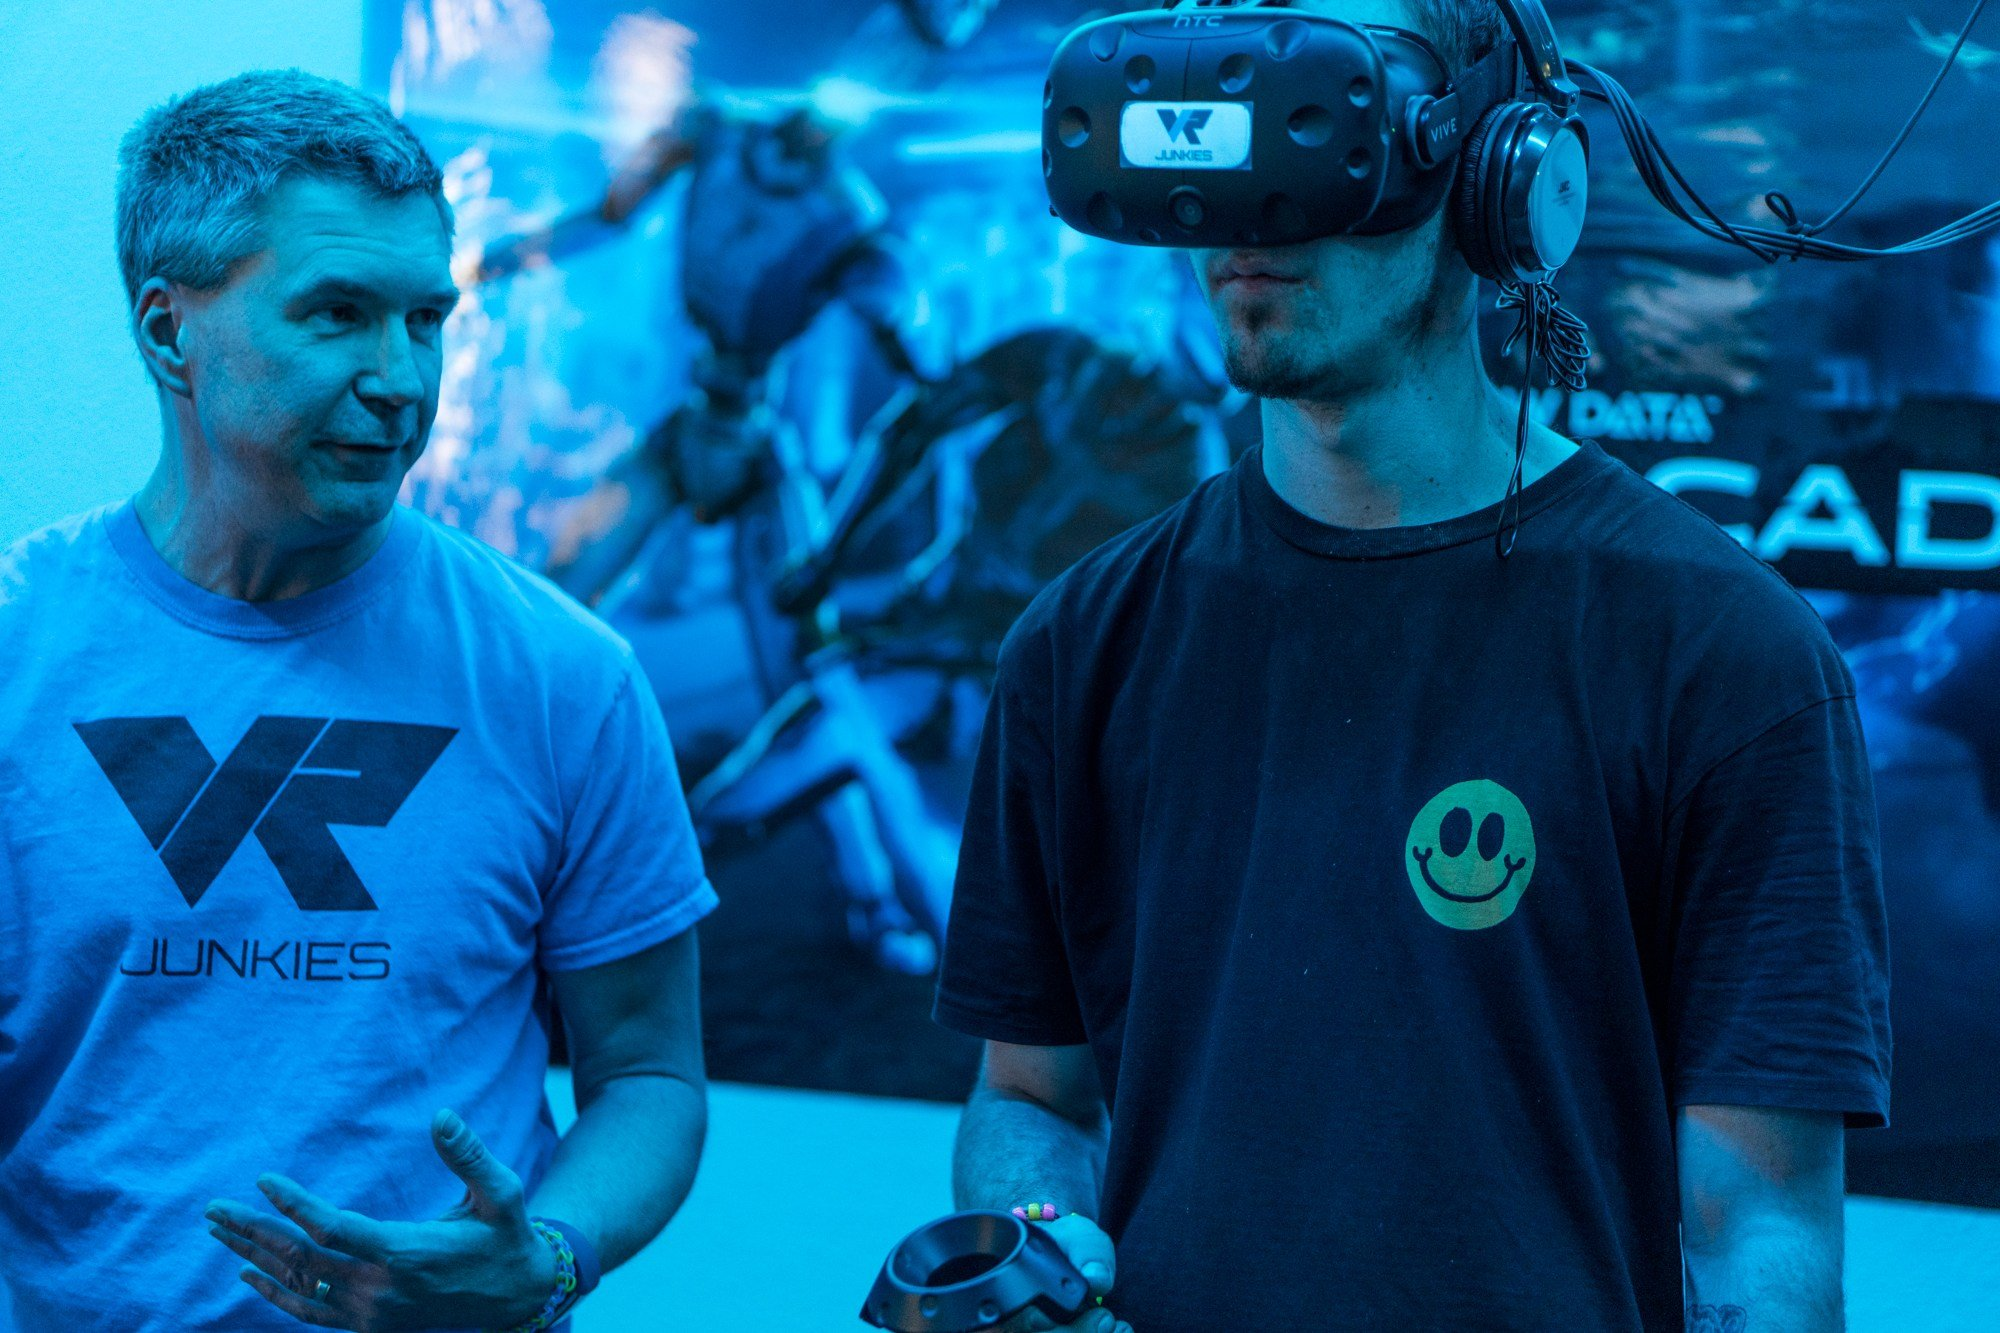 """Chris Krakowsk (left), co-owner of VR Junkies in Tempe, explains to Tyler Powell how to play """"Arizona Sunshine,"""" a post-apocalyptic VR zombie shooter game. (Source: Daria Kadovik/Cronkite News)"""